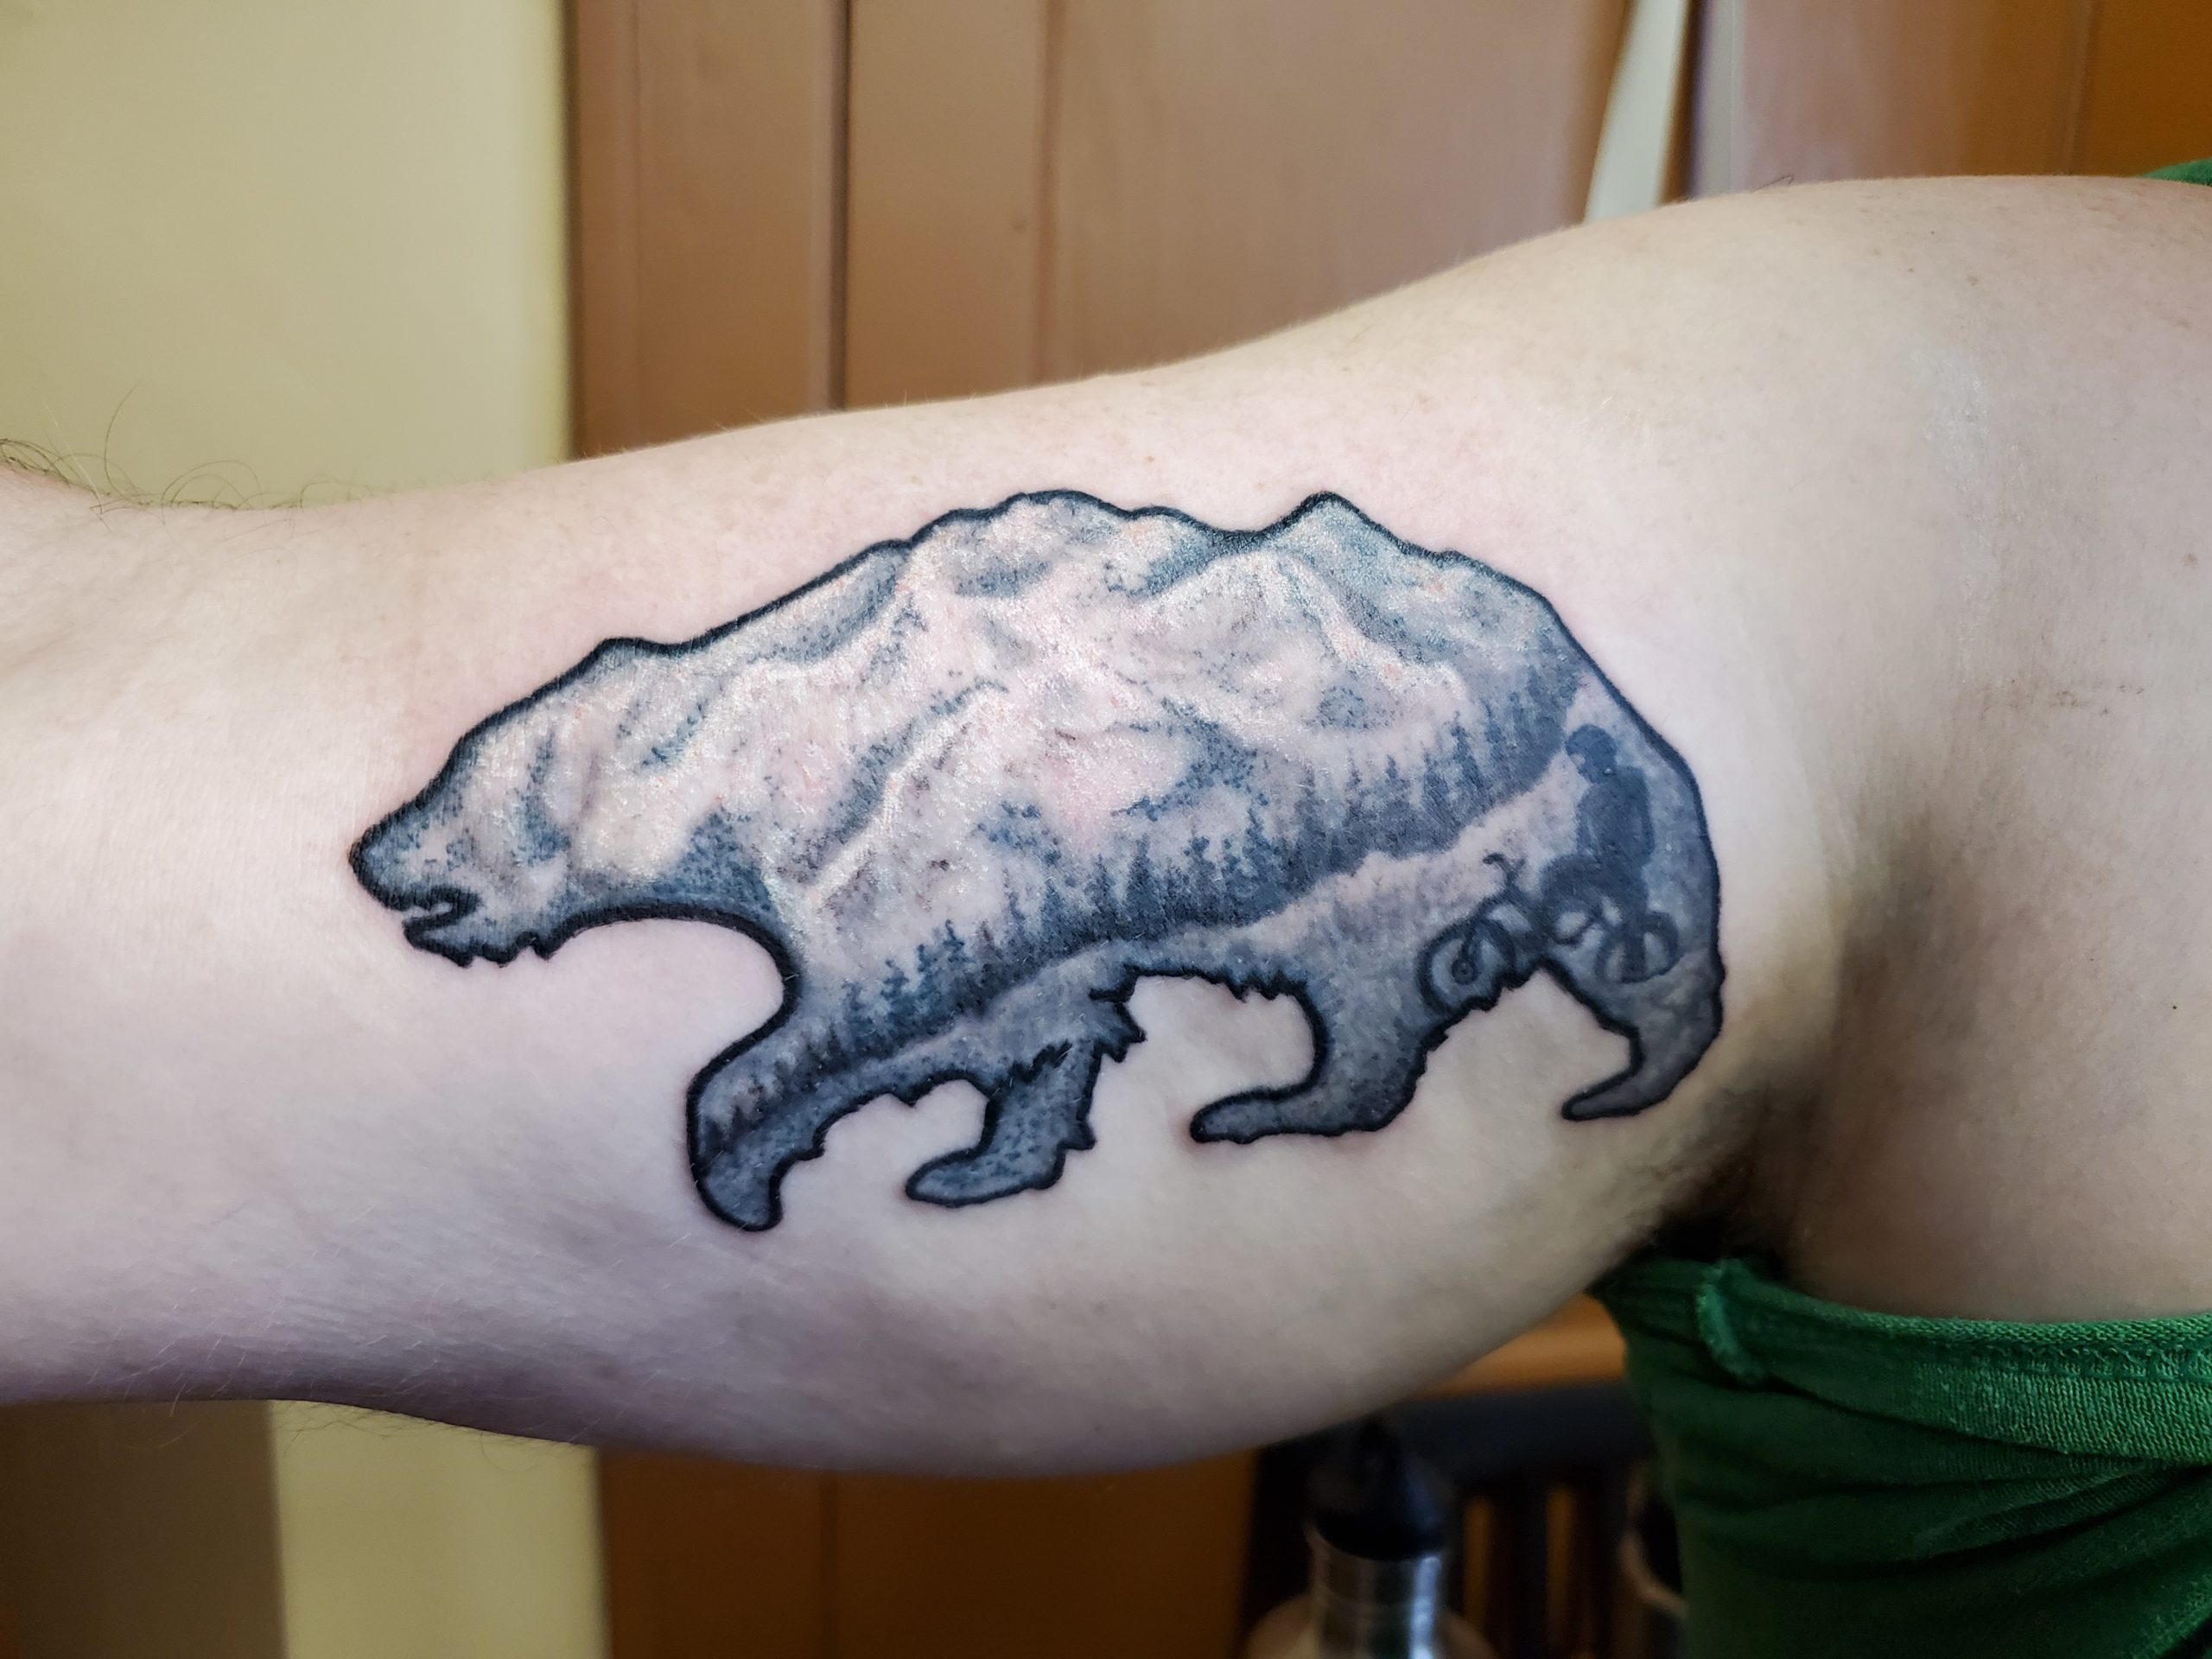 tattoo of bear image with black and gray style mountains and trees